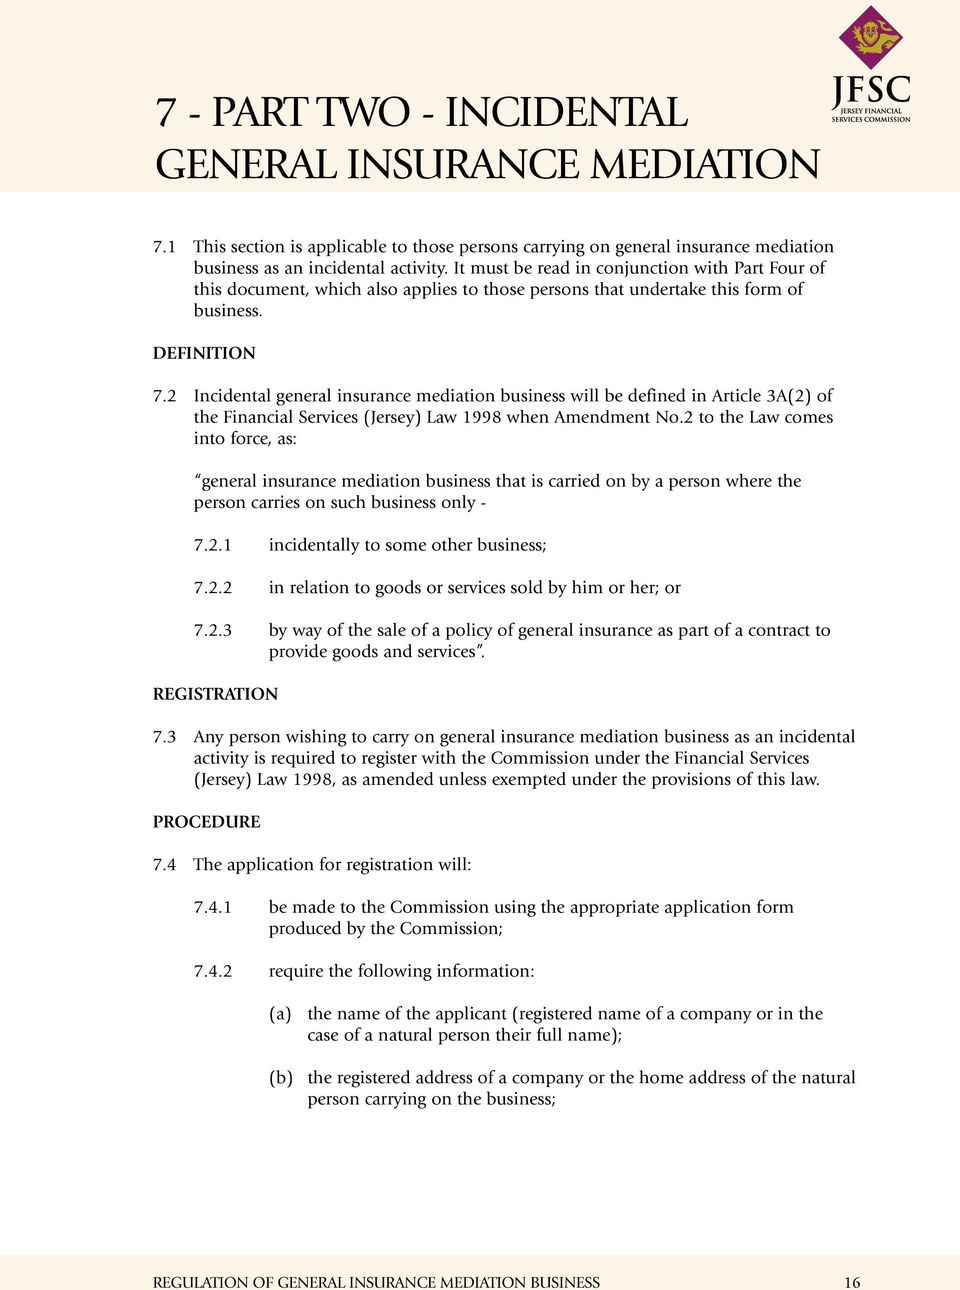 2 Incidental general insurance mediation business will be defined in Article 3A(2) of the Financial Services (Jersey) Law 1998 when Amendment No.